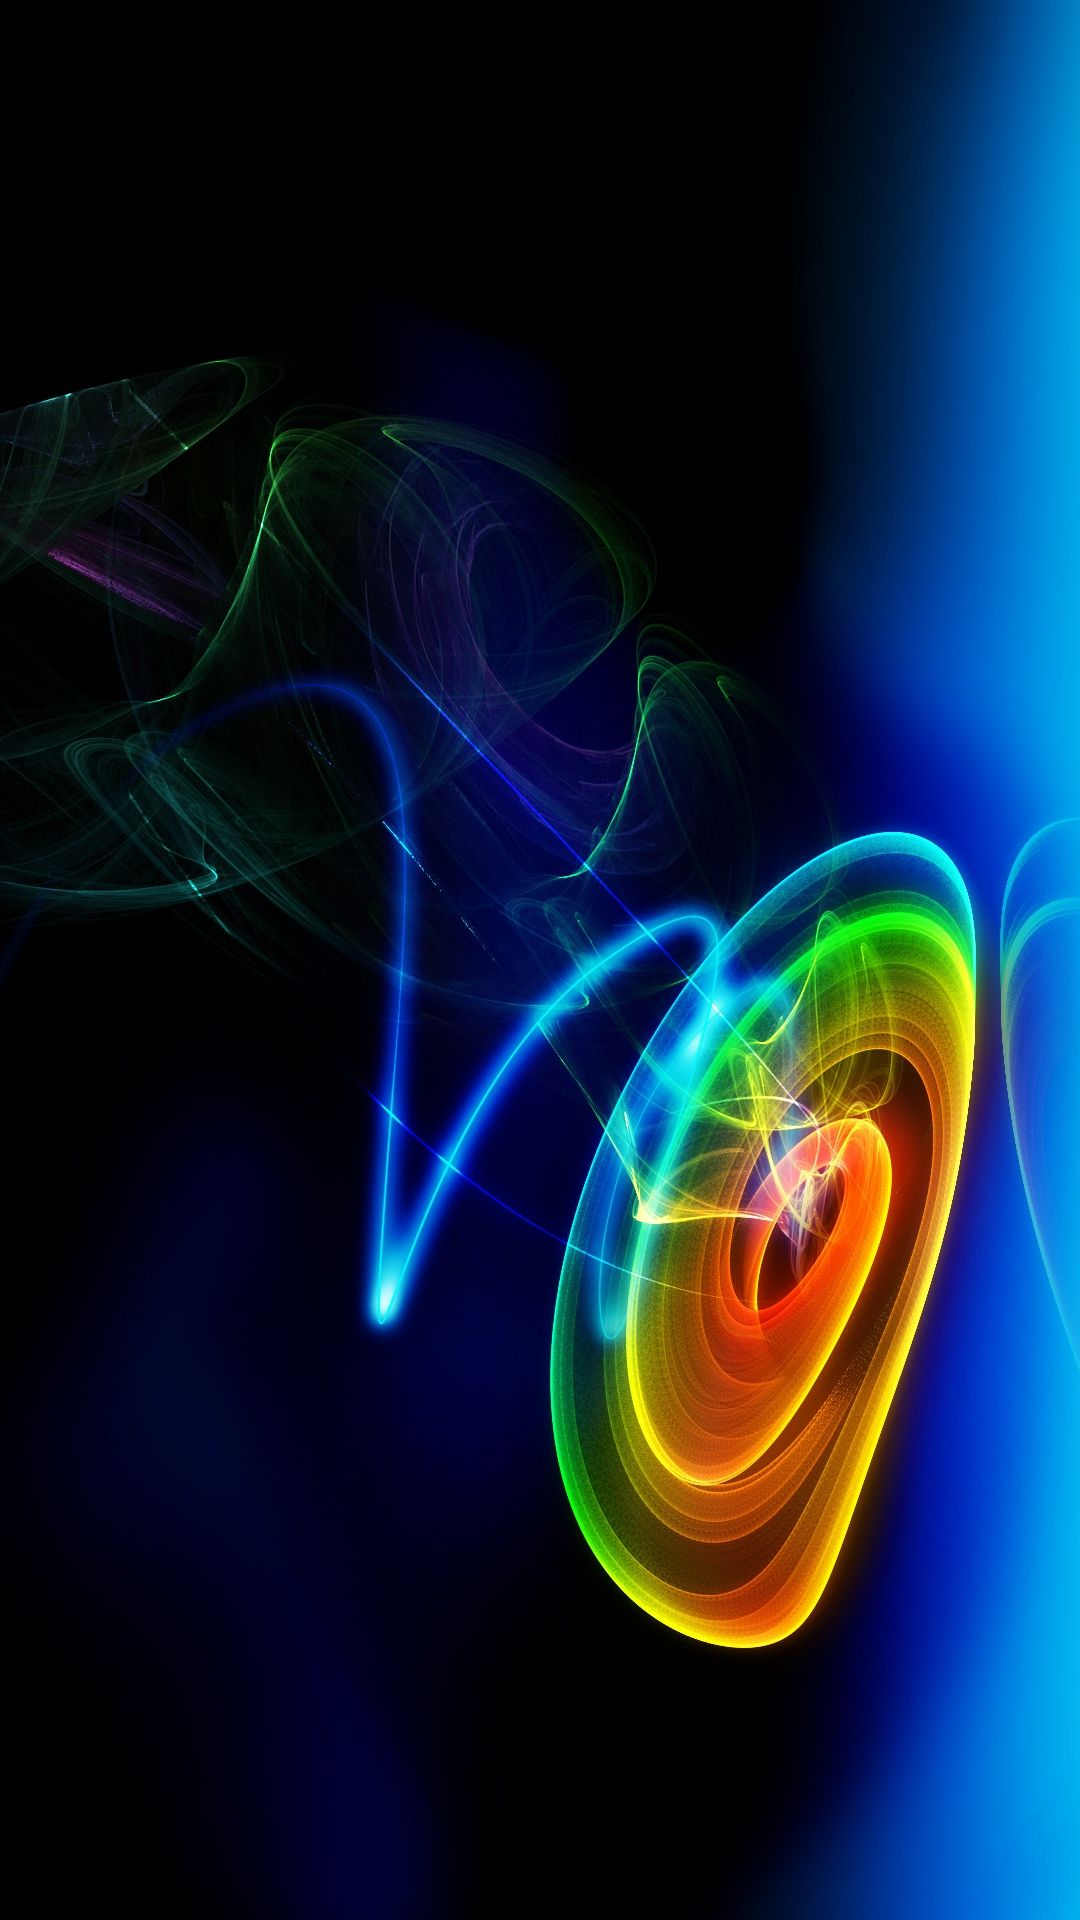 Abstract wallpaper for Galaxy S4. background in 1080x1920